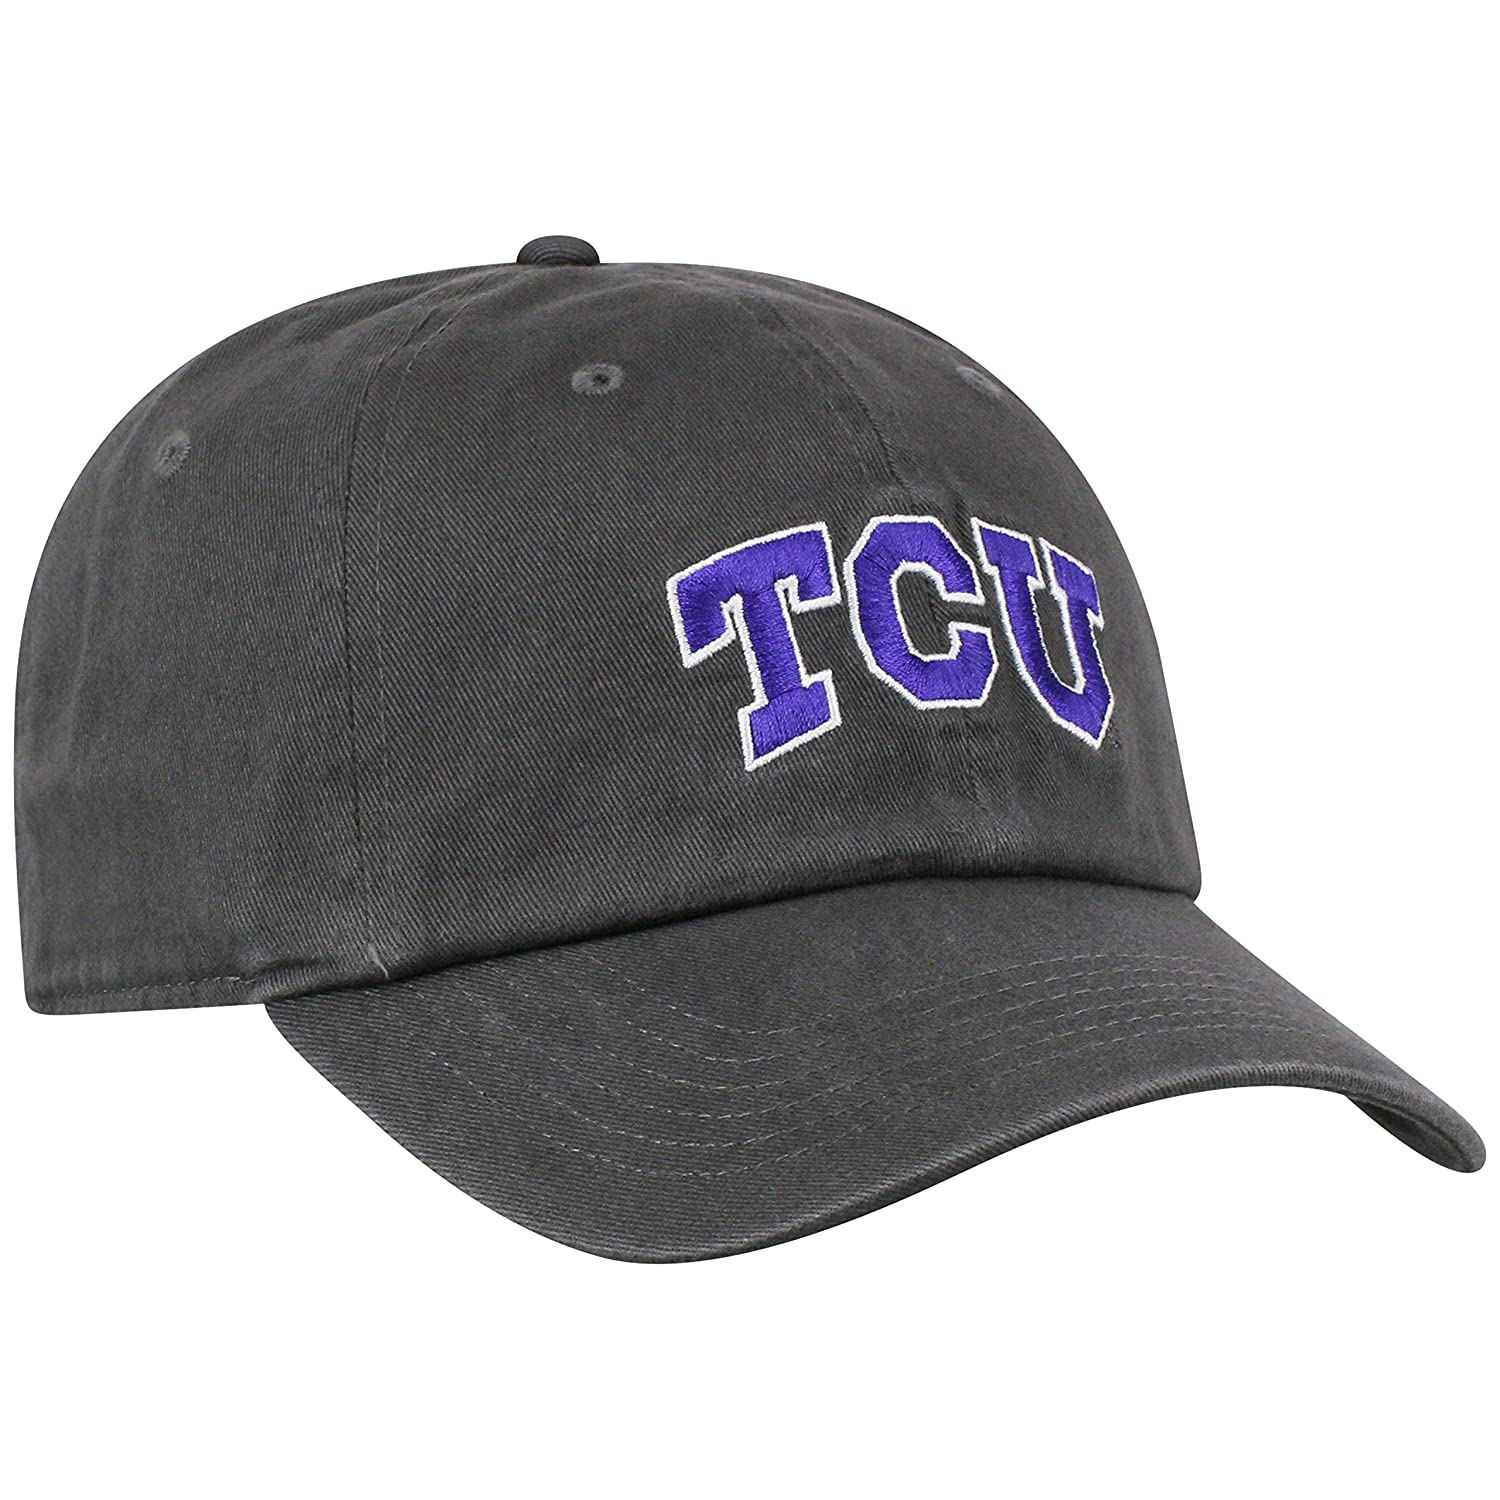 Top of the World NCAA Mens NCAA Mens Adjustable Hat Relaxed Fit Charcoal Icon